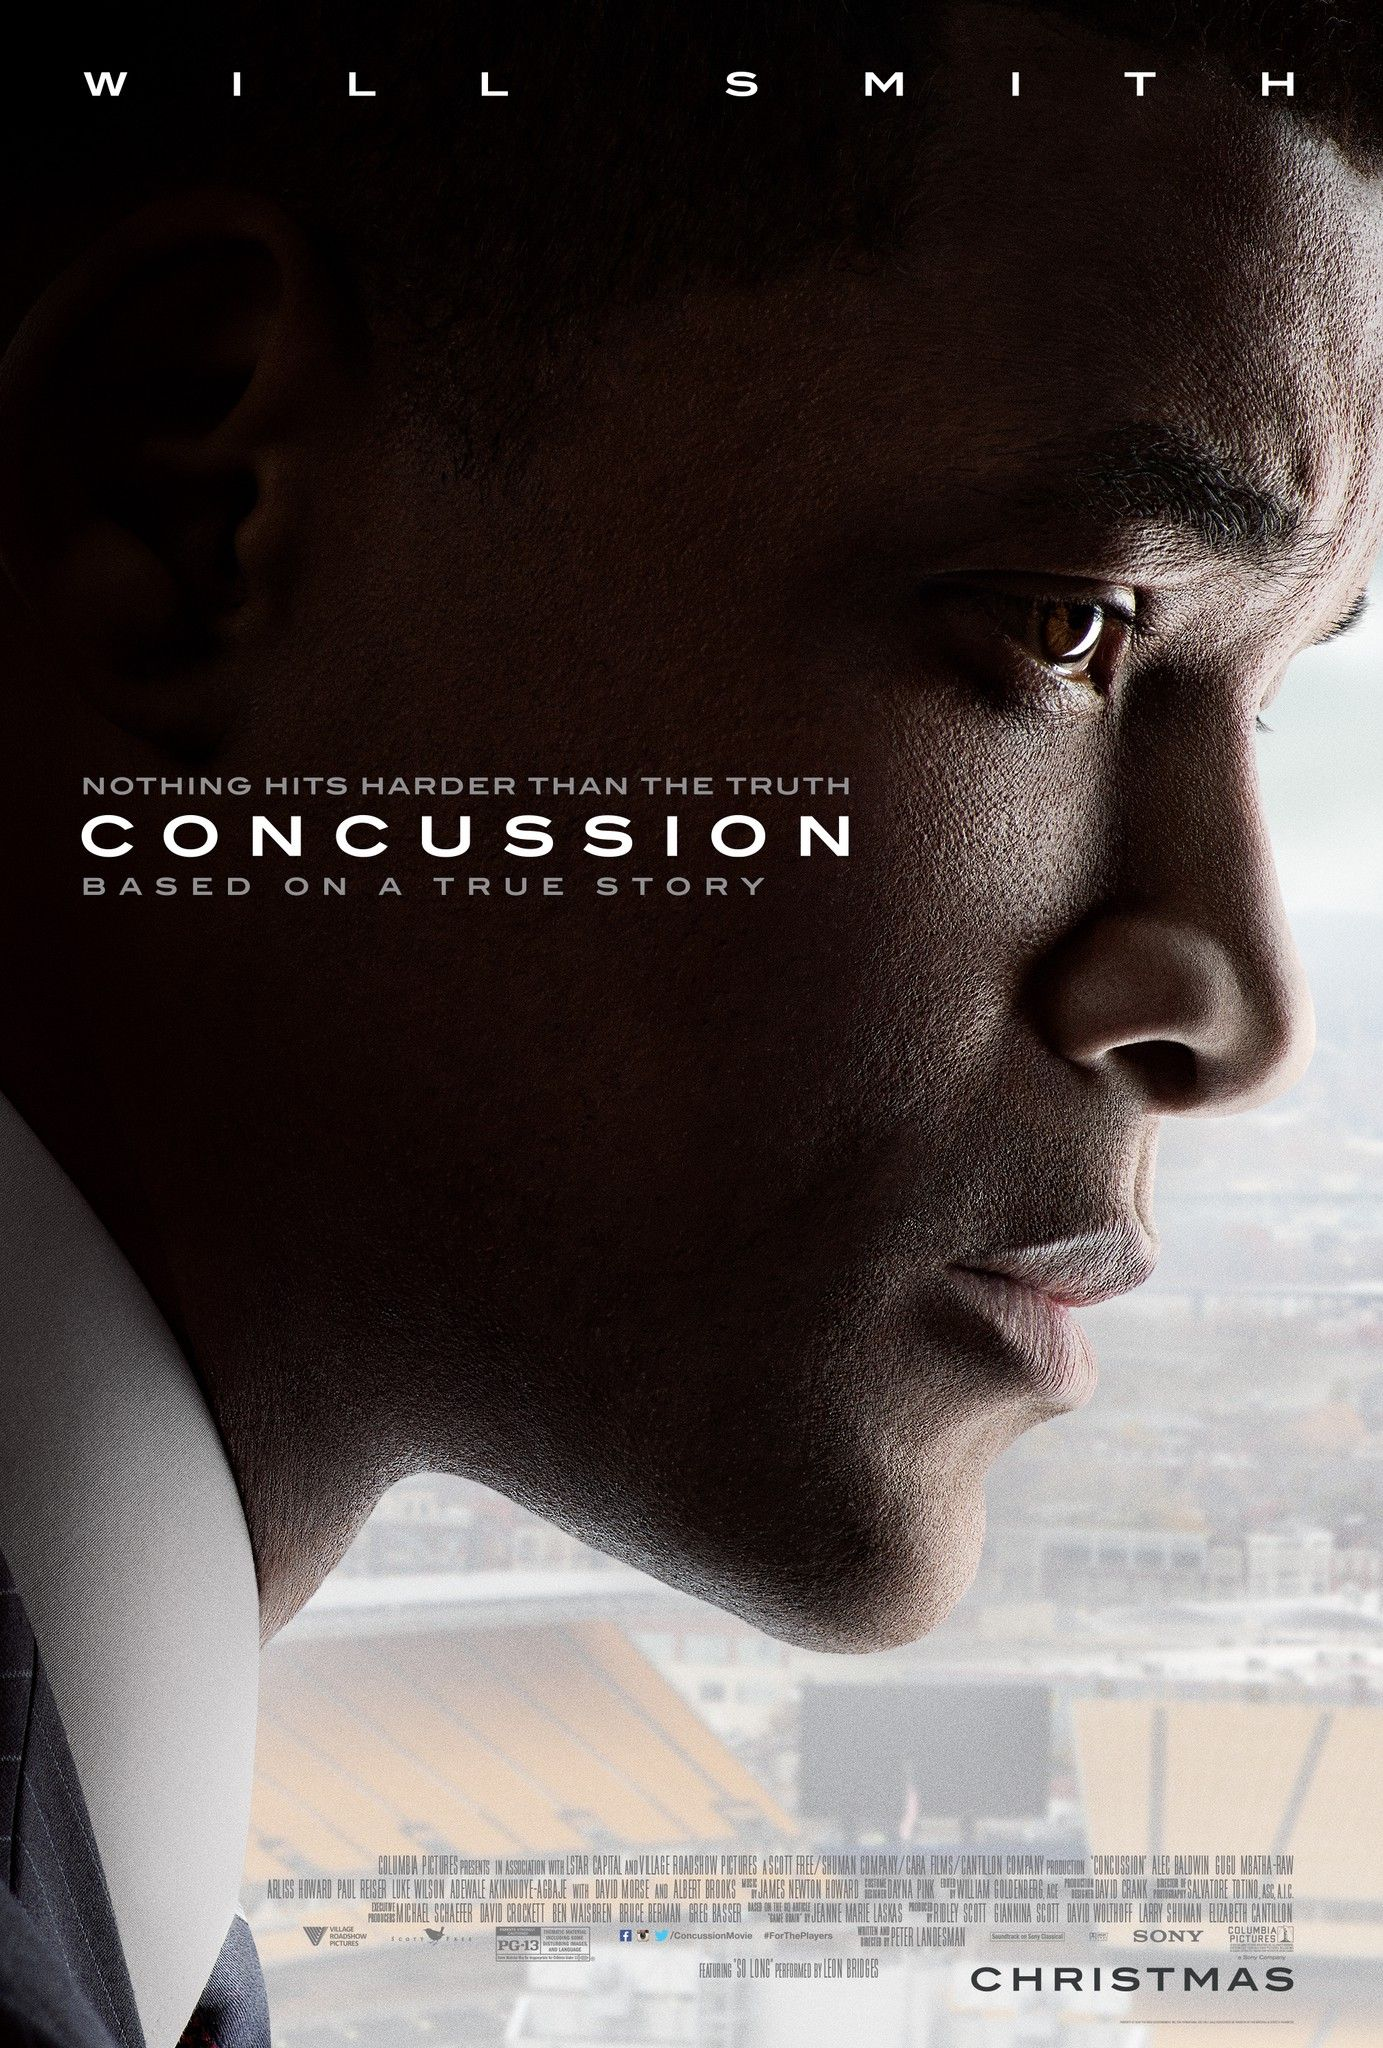 New Poster For Concussion In Which Will Smith Portrays The Doctor